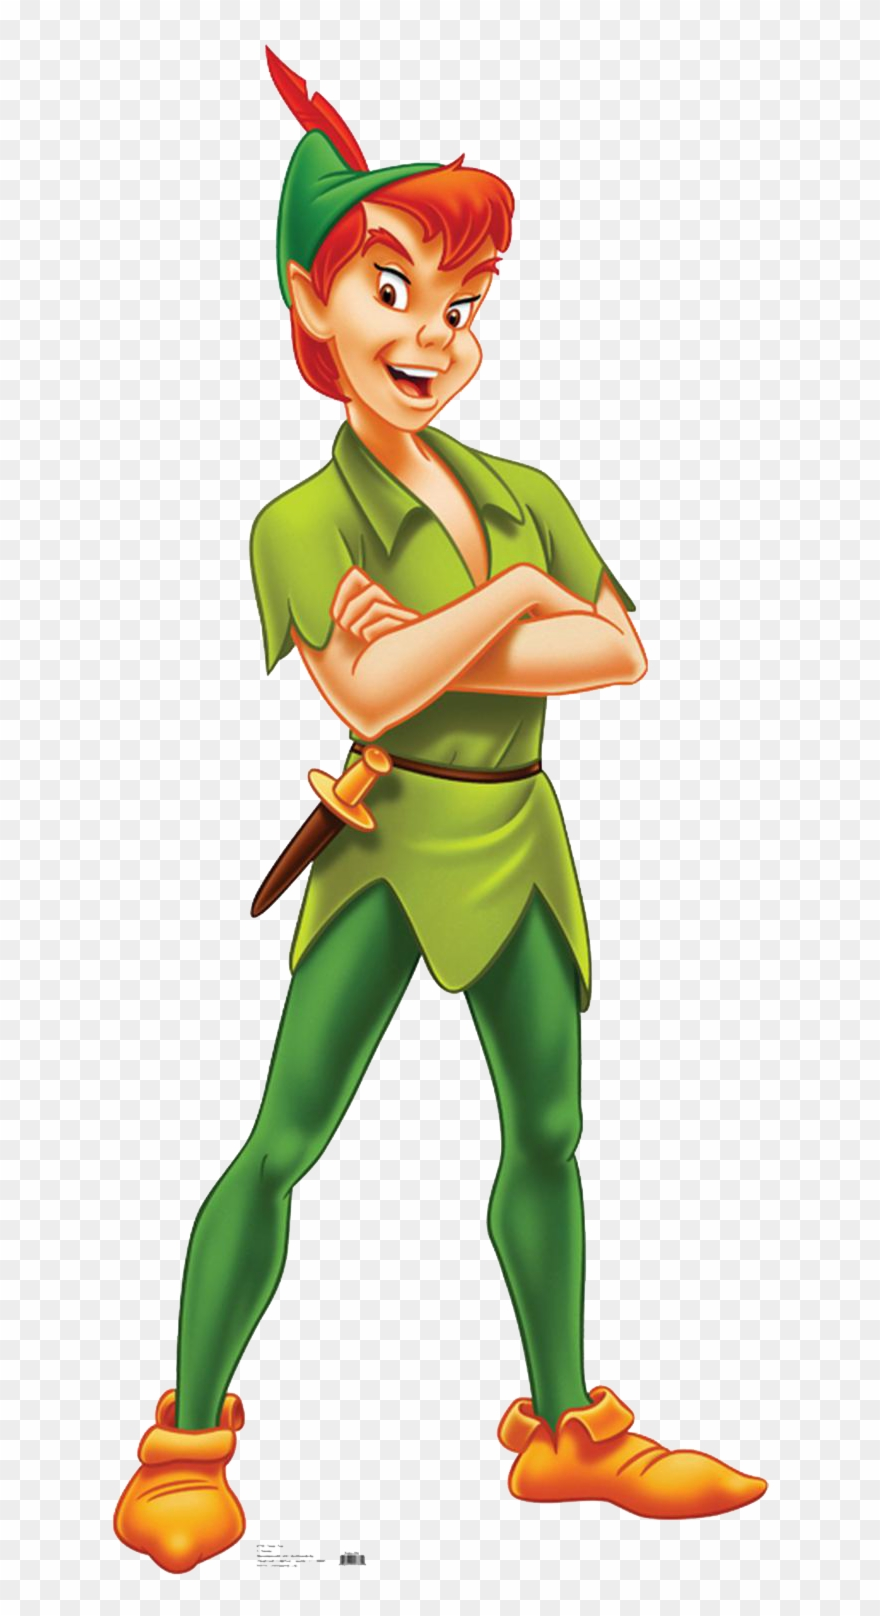 Peter Pan Clipart for free download.